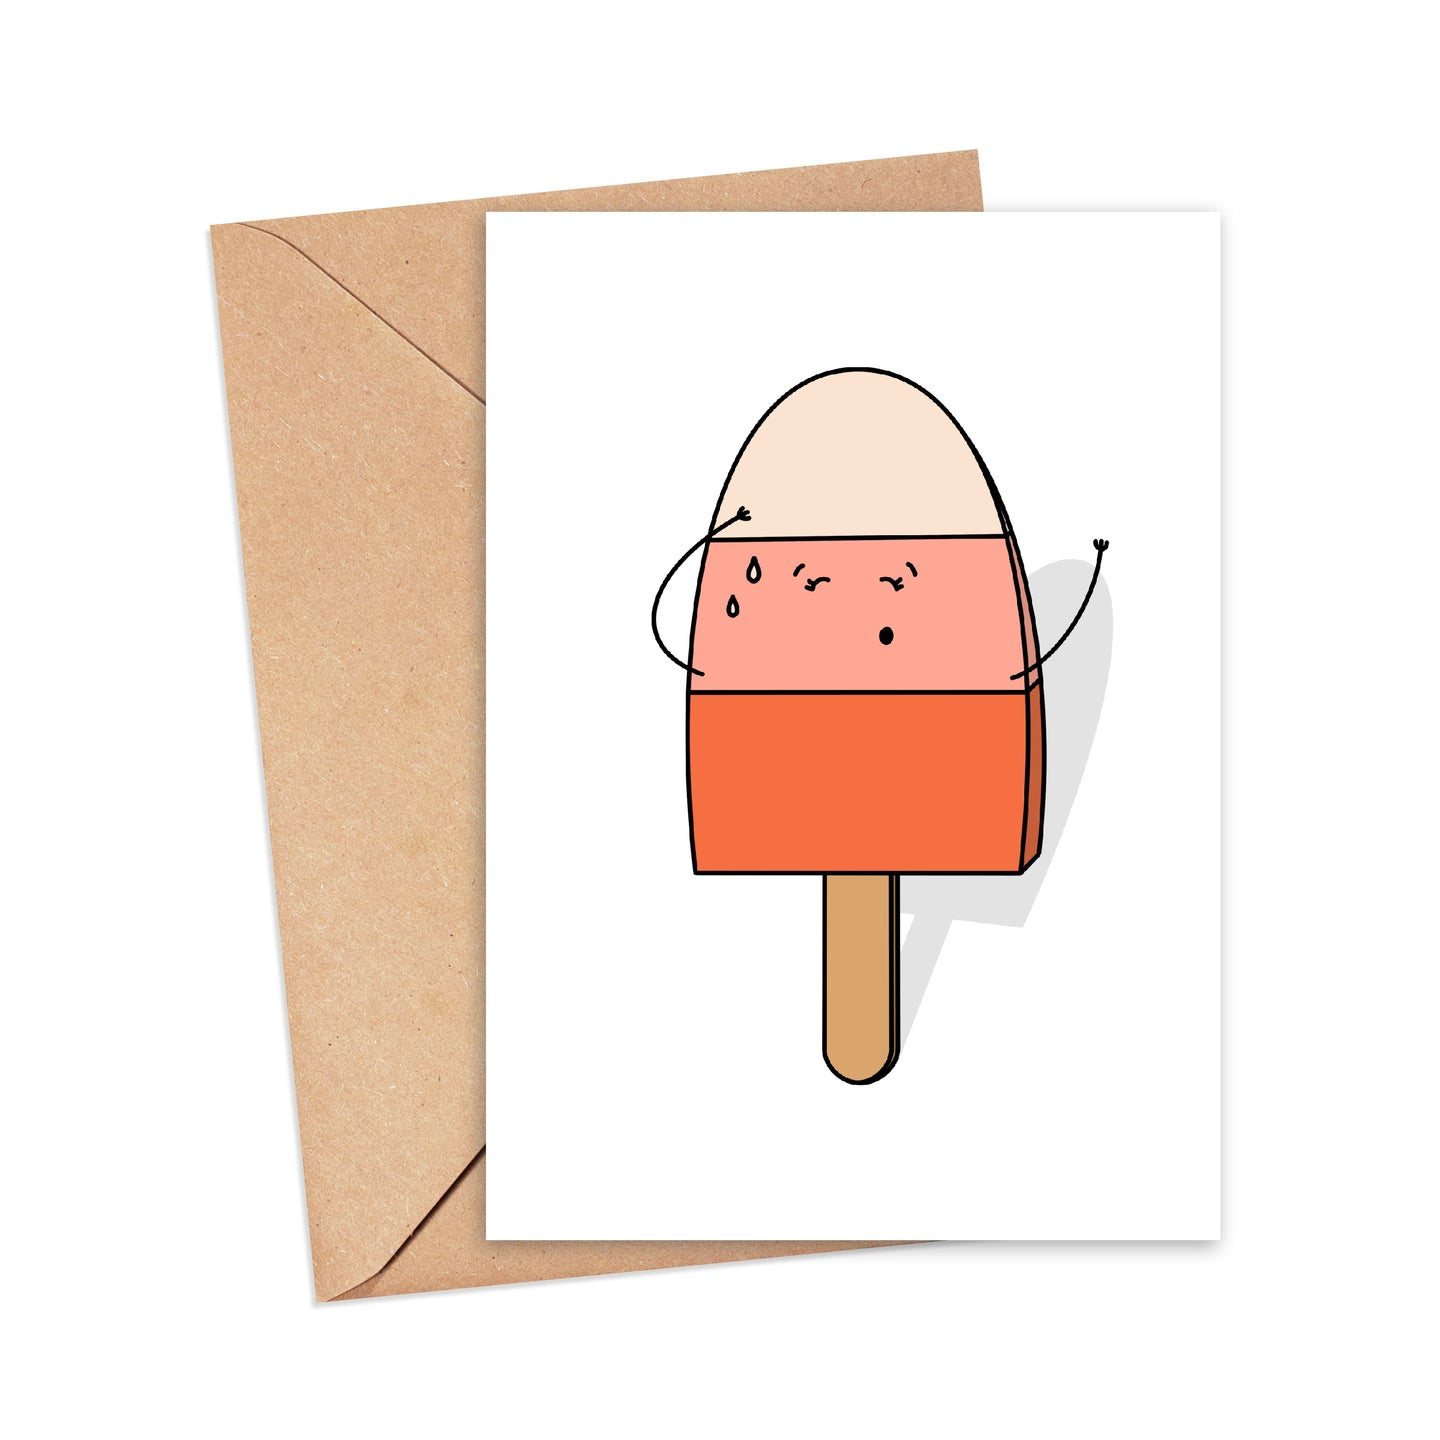 Greetings card featuring an illustration of an ice lolly sweating, mopping its forehead, by Lulibell Studio.